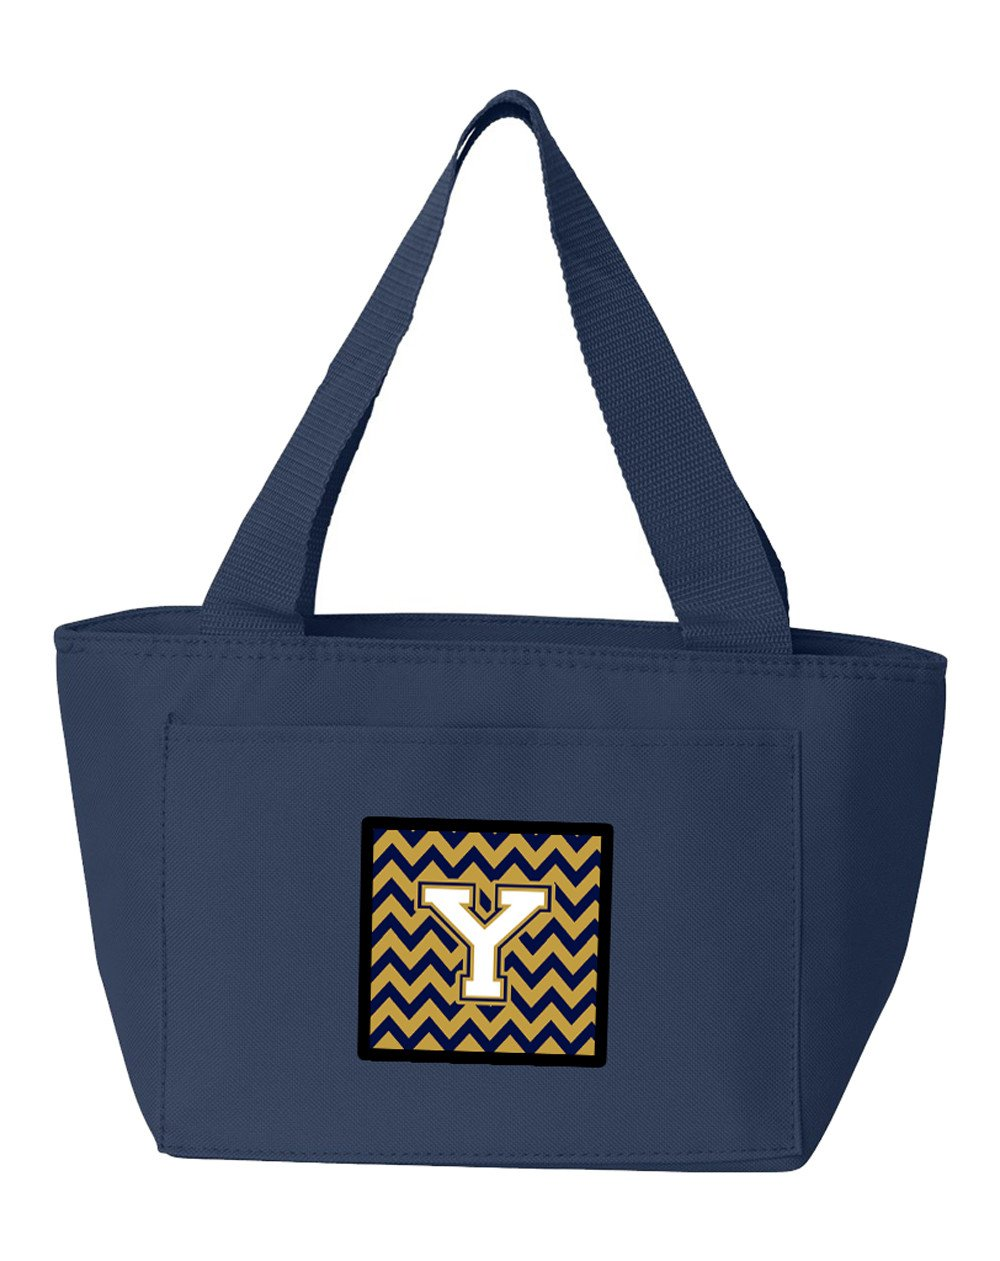 Letter Y Chevron Navy Blue and Gold Lunch Bag CJ1057-YNA-8808 by Caroline's Treasures